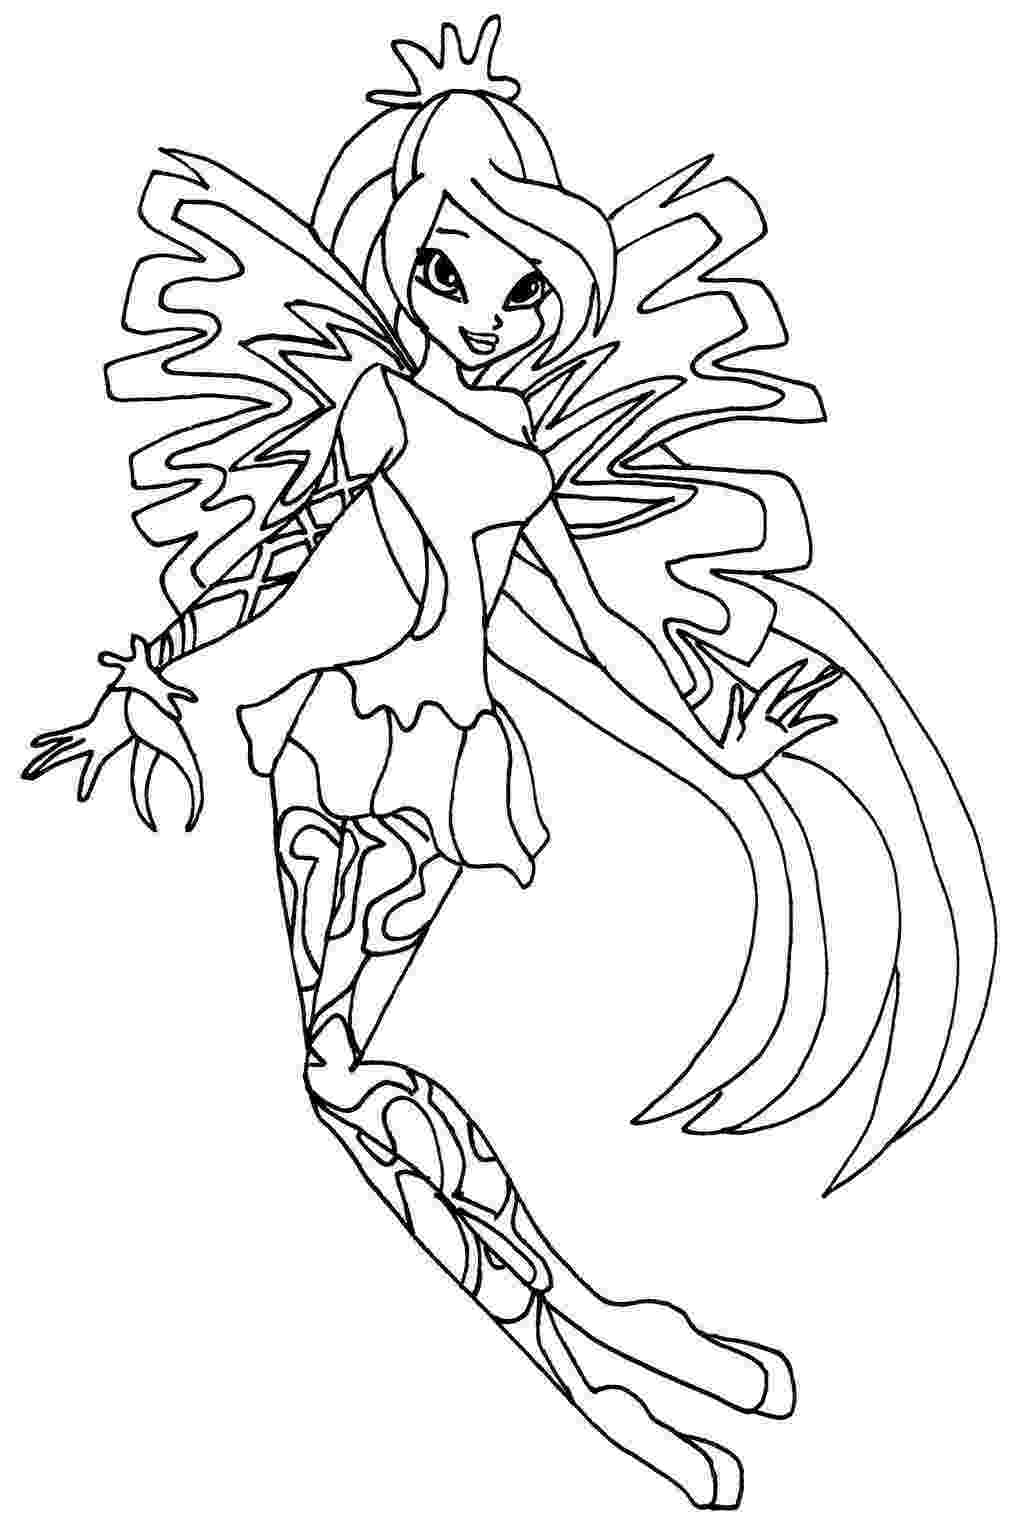 winx bloom coloring pages bloom charmix coloring page free printable coloring pages coloring pages winx bloom